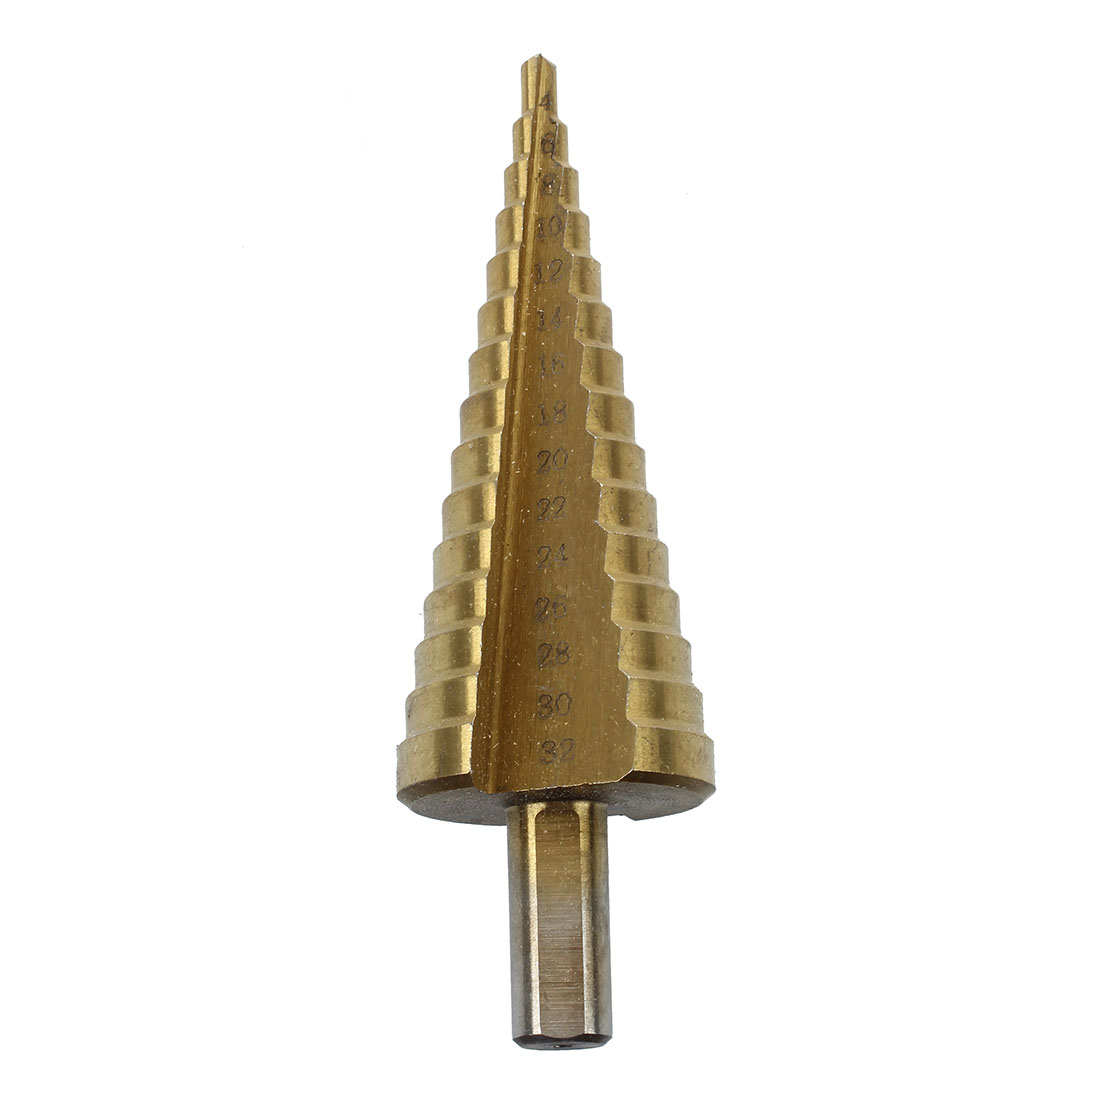 Set of 3 Drills Cutters Floors Conical HSS steel thgs set of 3 drills cutters floors conical hss steel